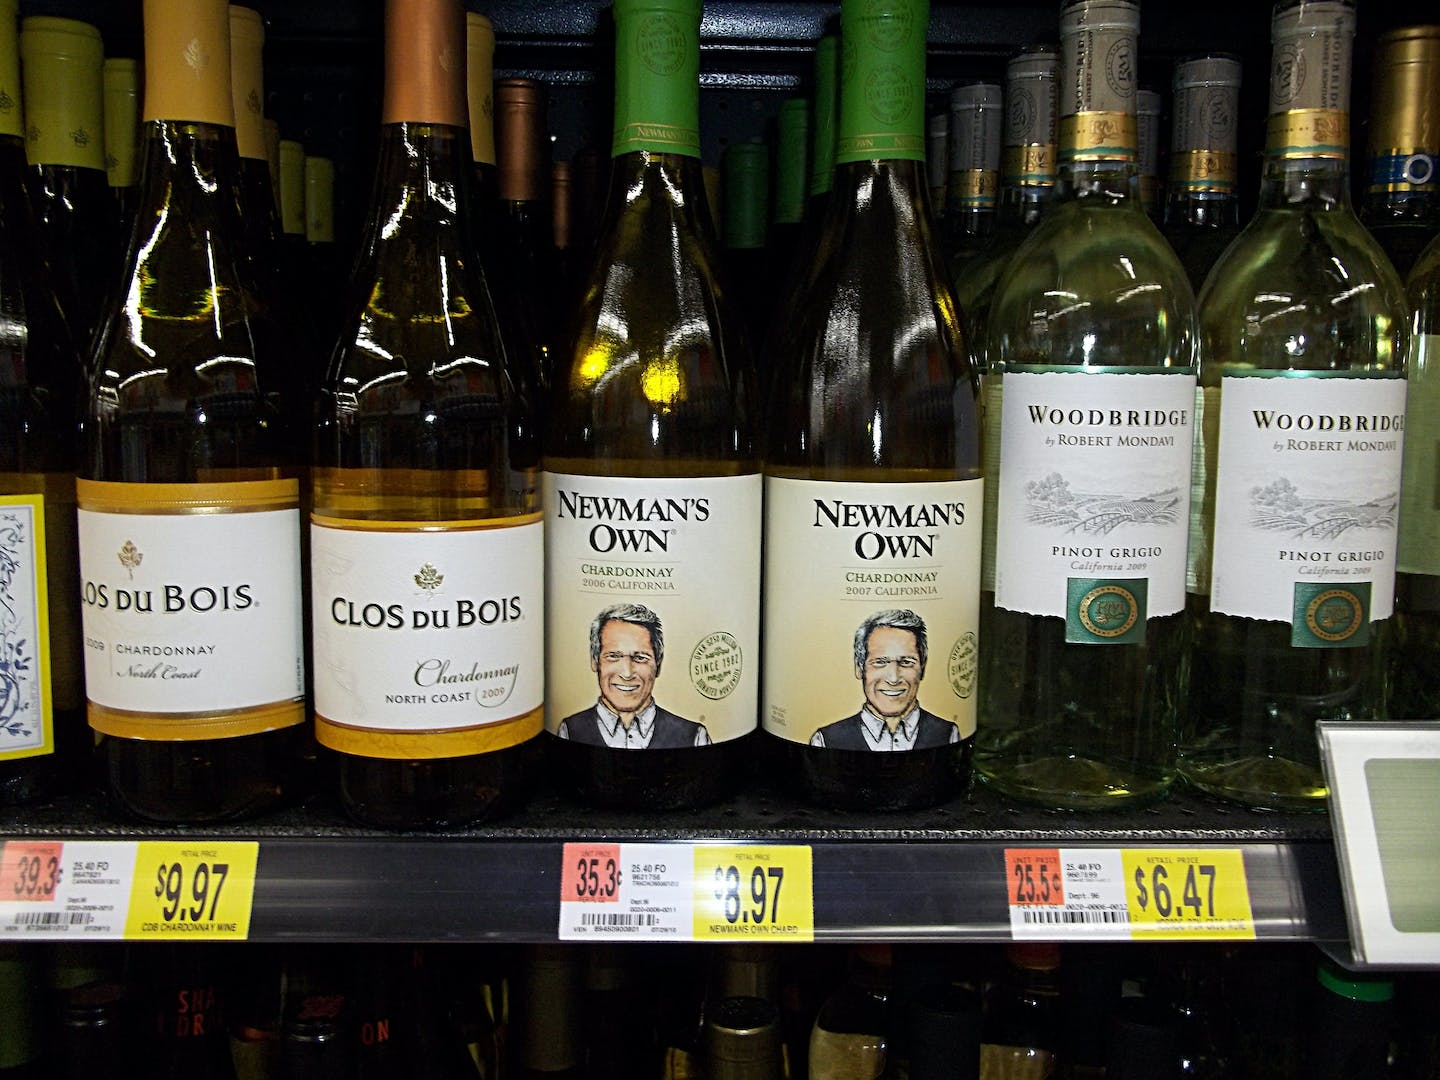 wine bottles on grocery shelf with price labels